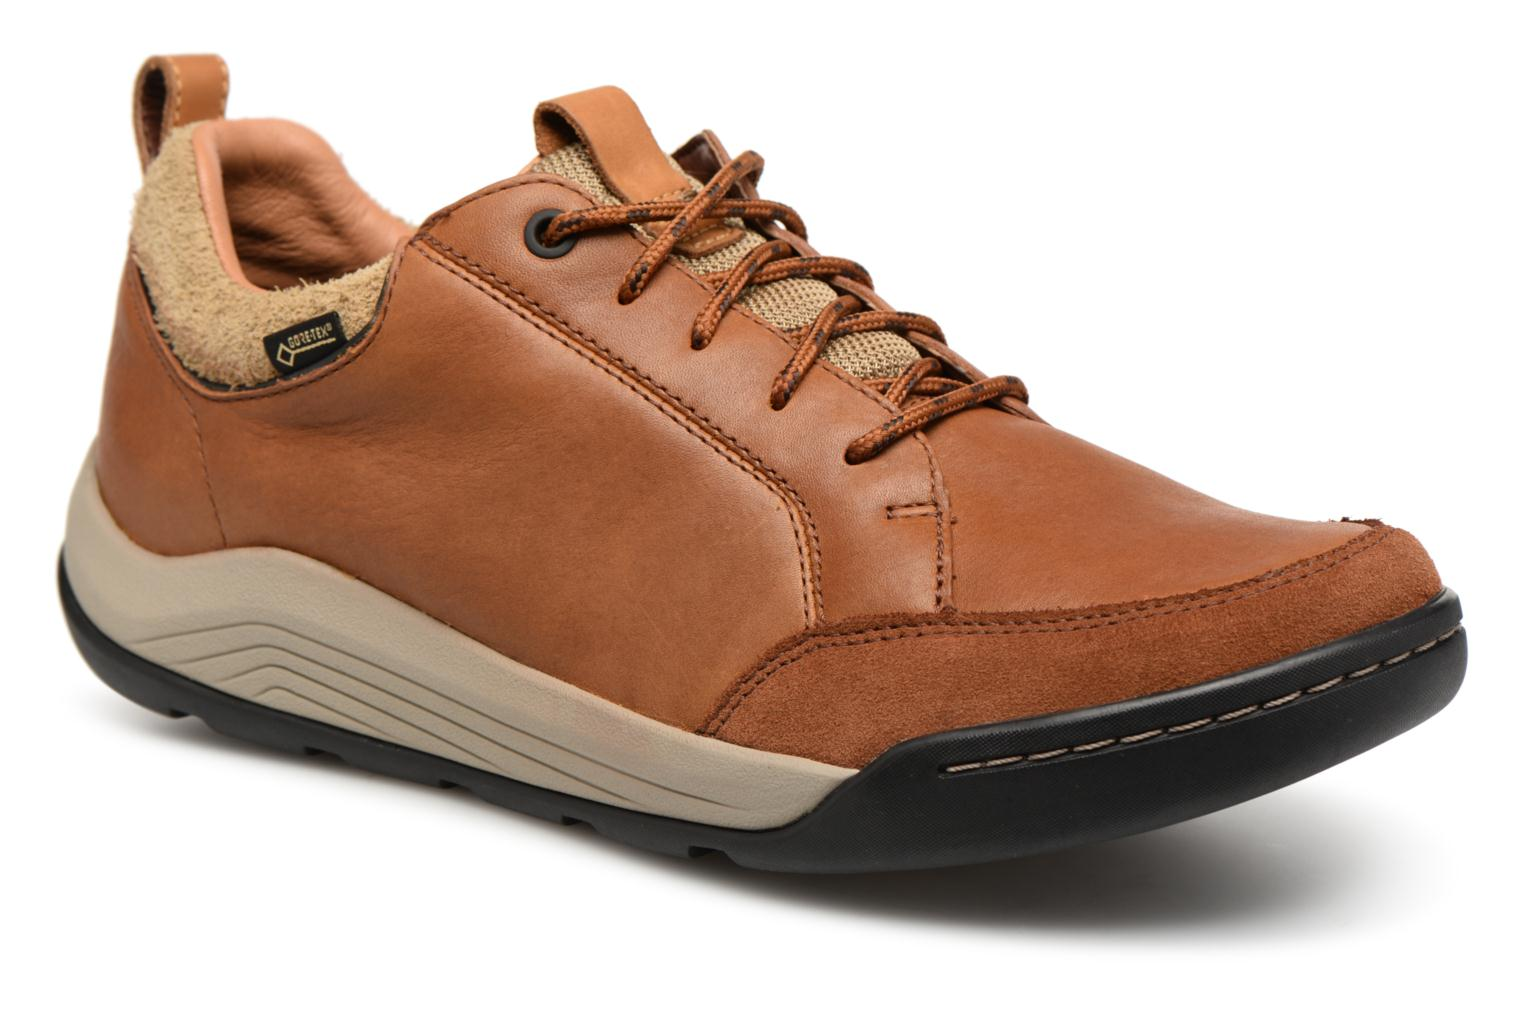 Clarks AshcombeBayGTX (Brown) Trainers - Trainers (Brown) chez (339119) 4b886c